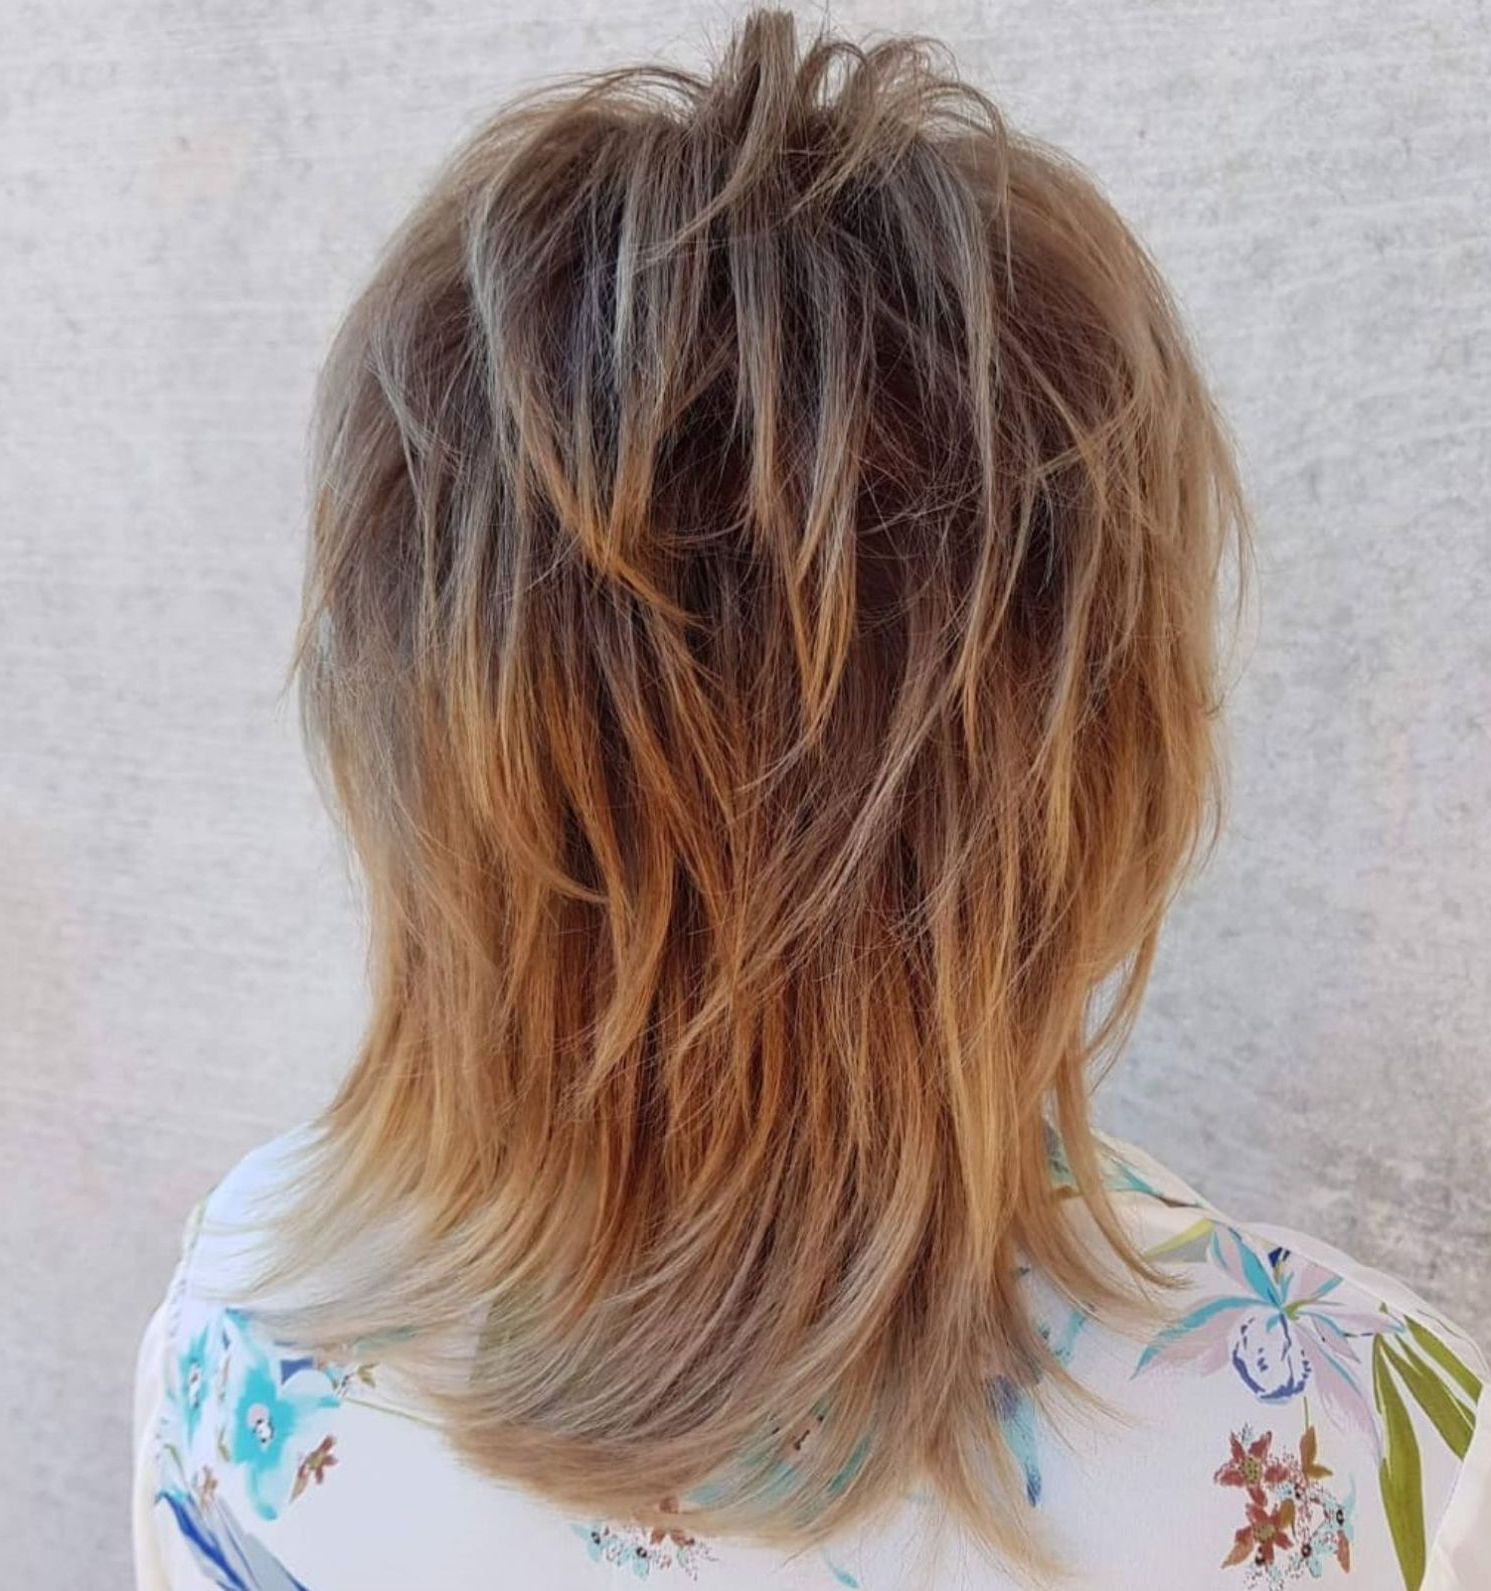 Pin On Short Shag Hairstyles In Most Recently Released Medium Wavy Bronde Shag Haircuts (View 11 of 20)